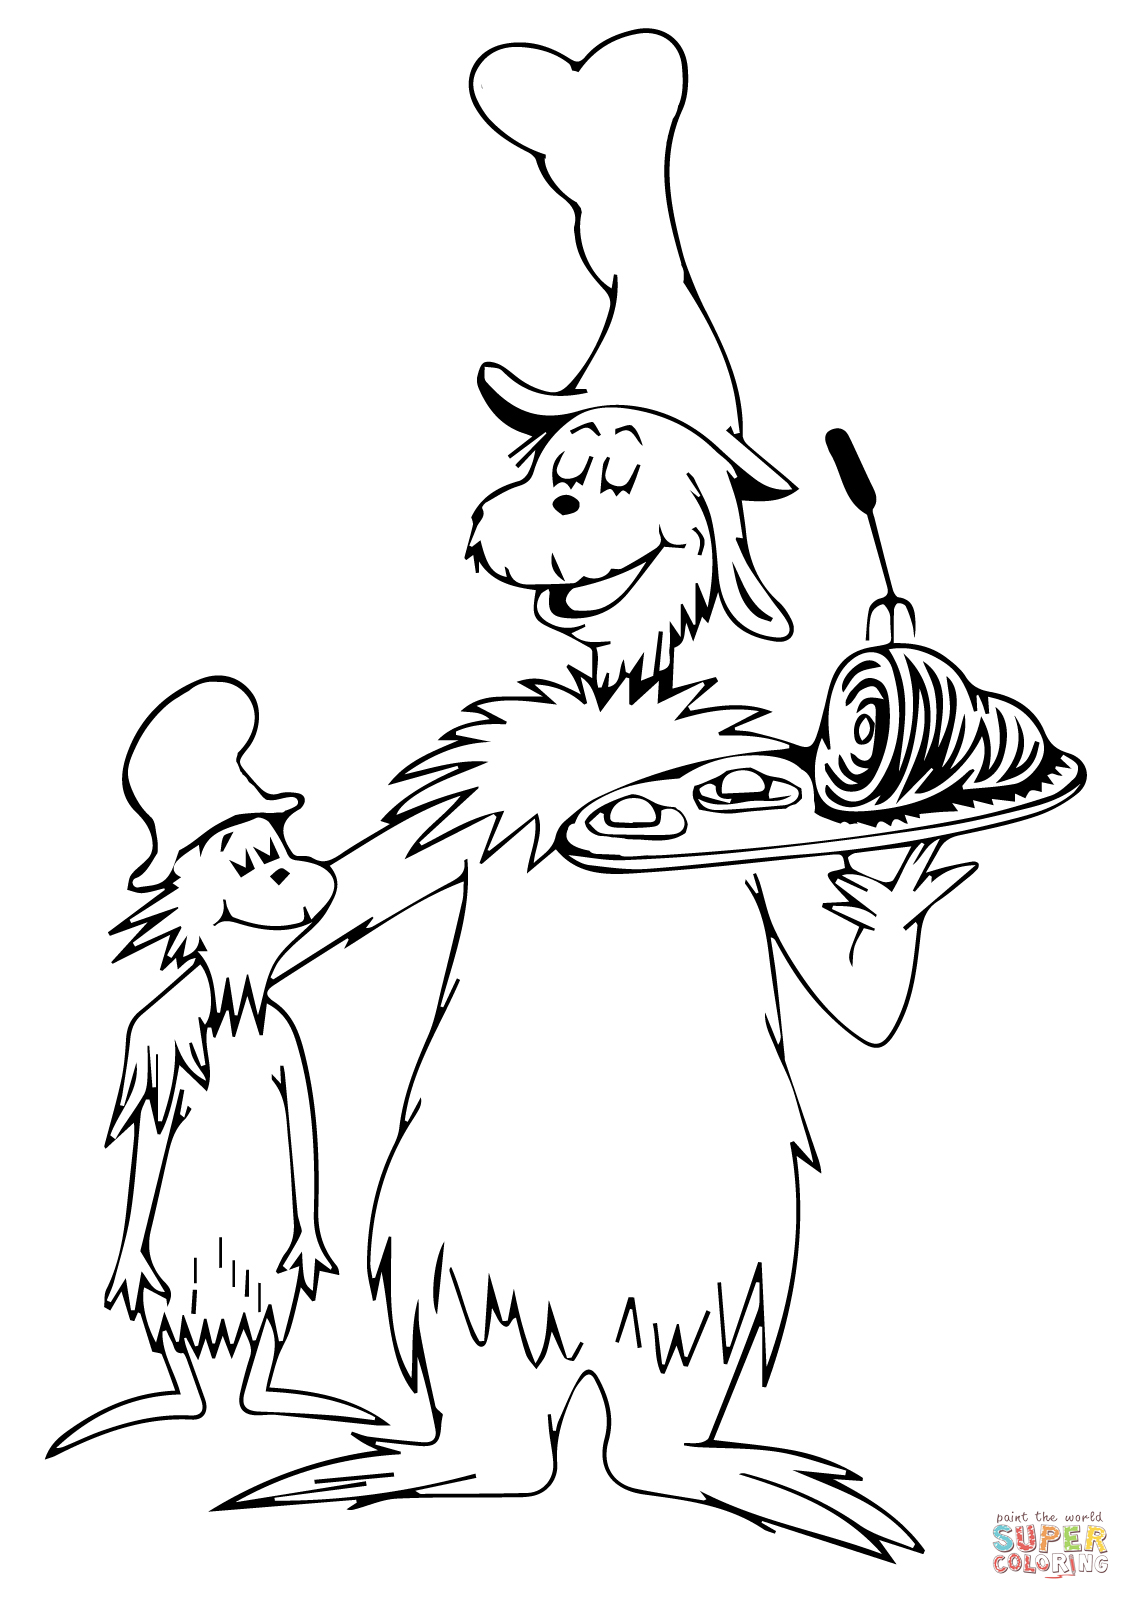 coloring pages dr seuss - photo#16